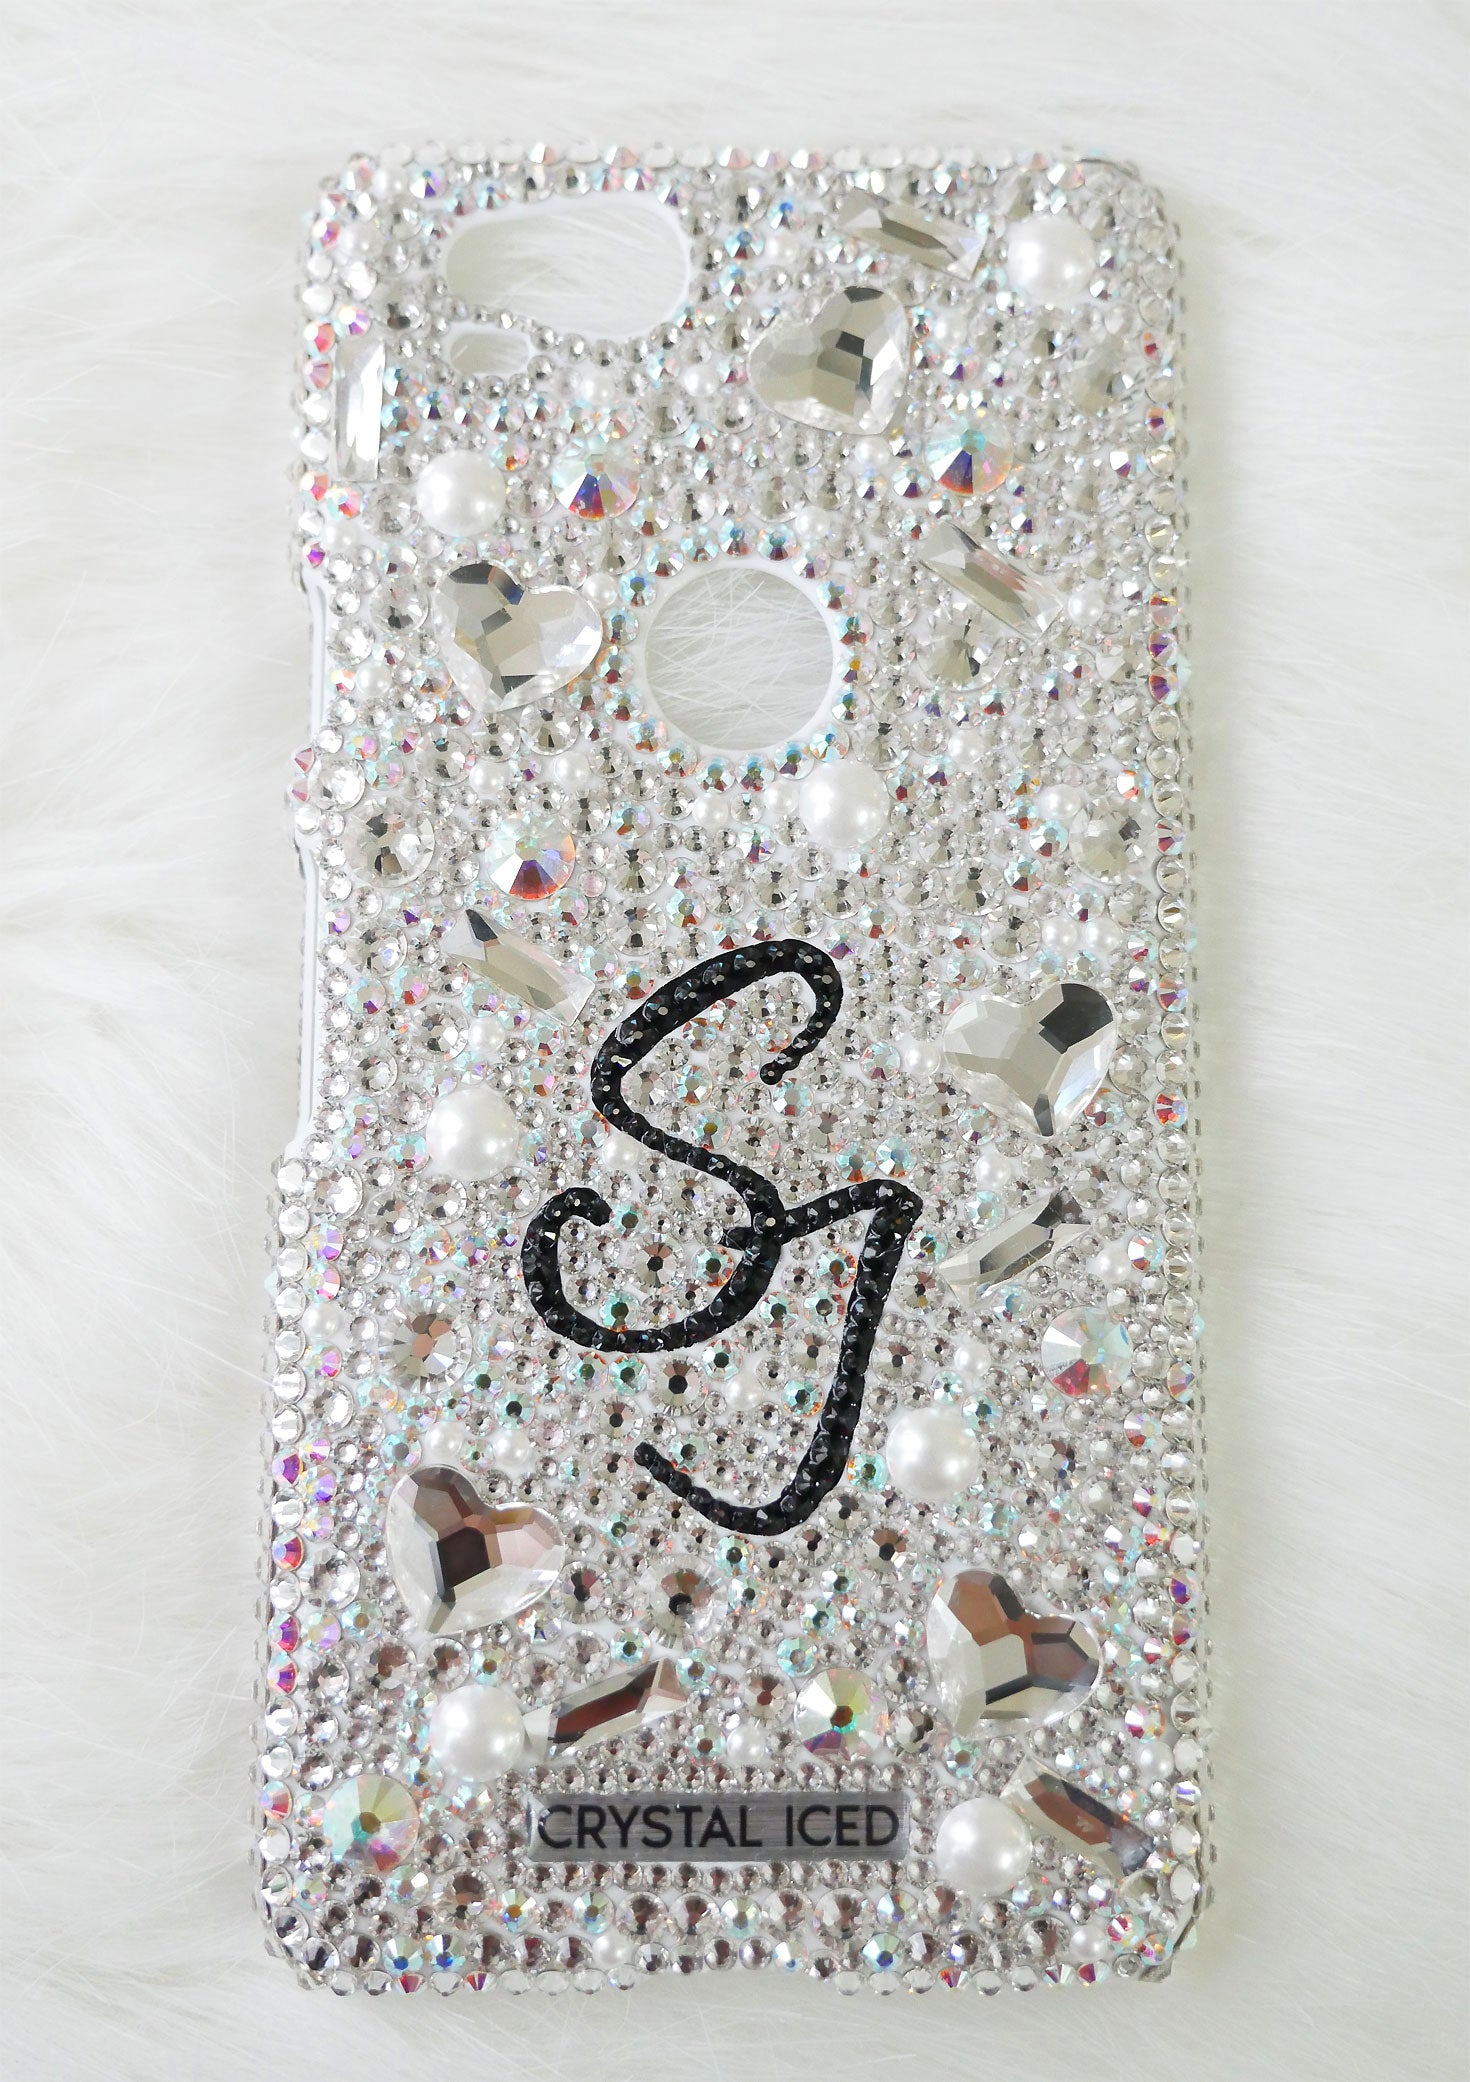 09dd03679 Crystal Iced : Amour with your Name Swarovski Crystals (Design #229)